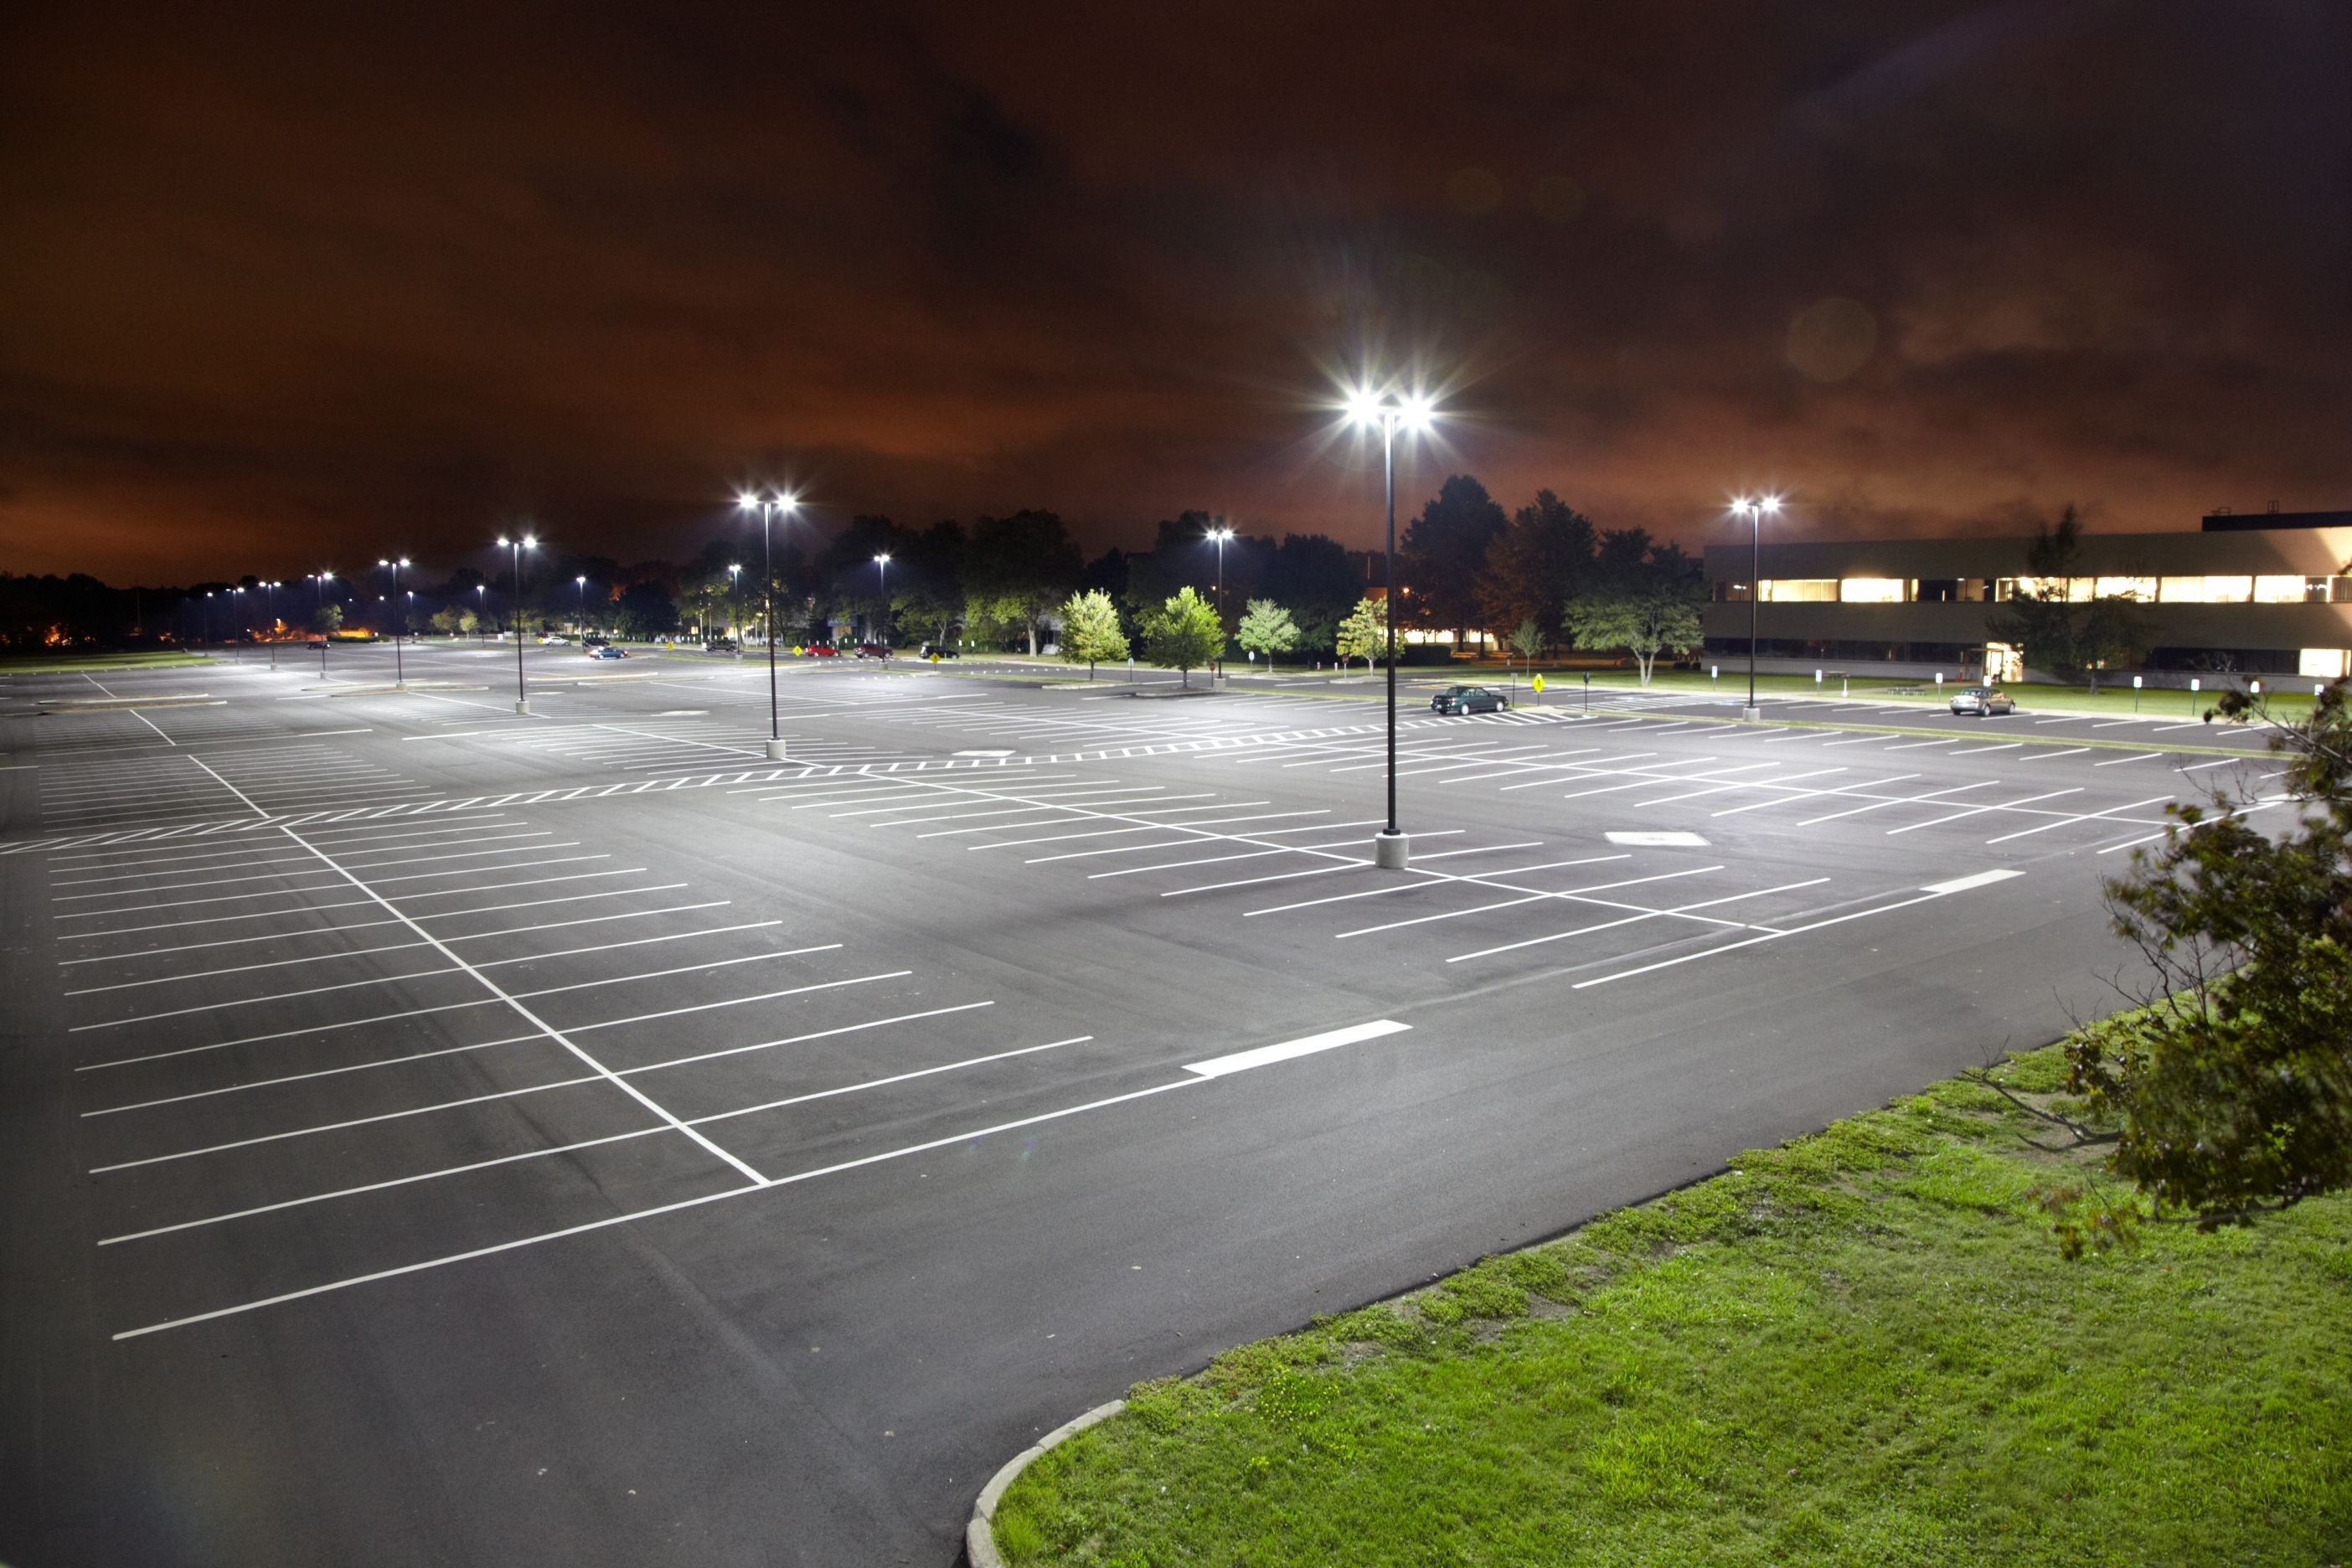 Electrical Wiring For Lights In Parking Lot - Free Car Wiring Diagrams •